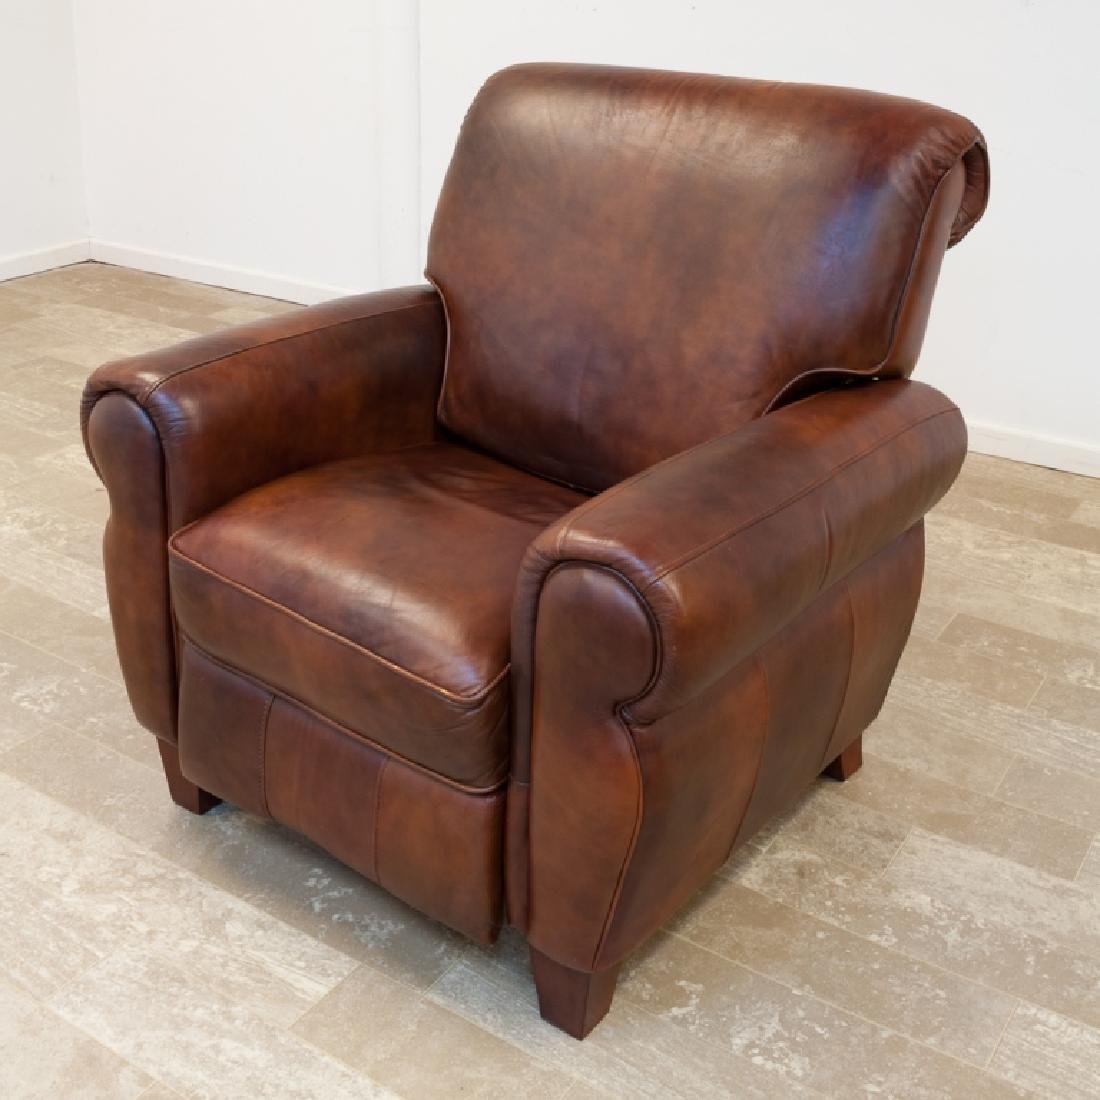 Leather Recliner Woodworth Wooden Industries